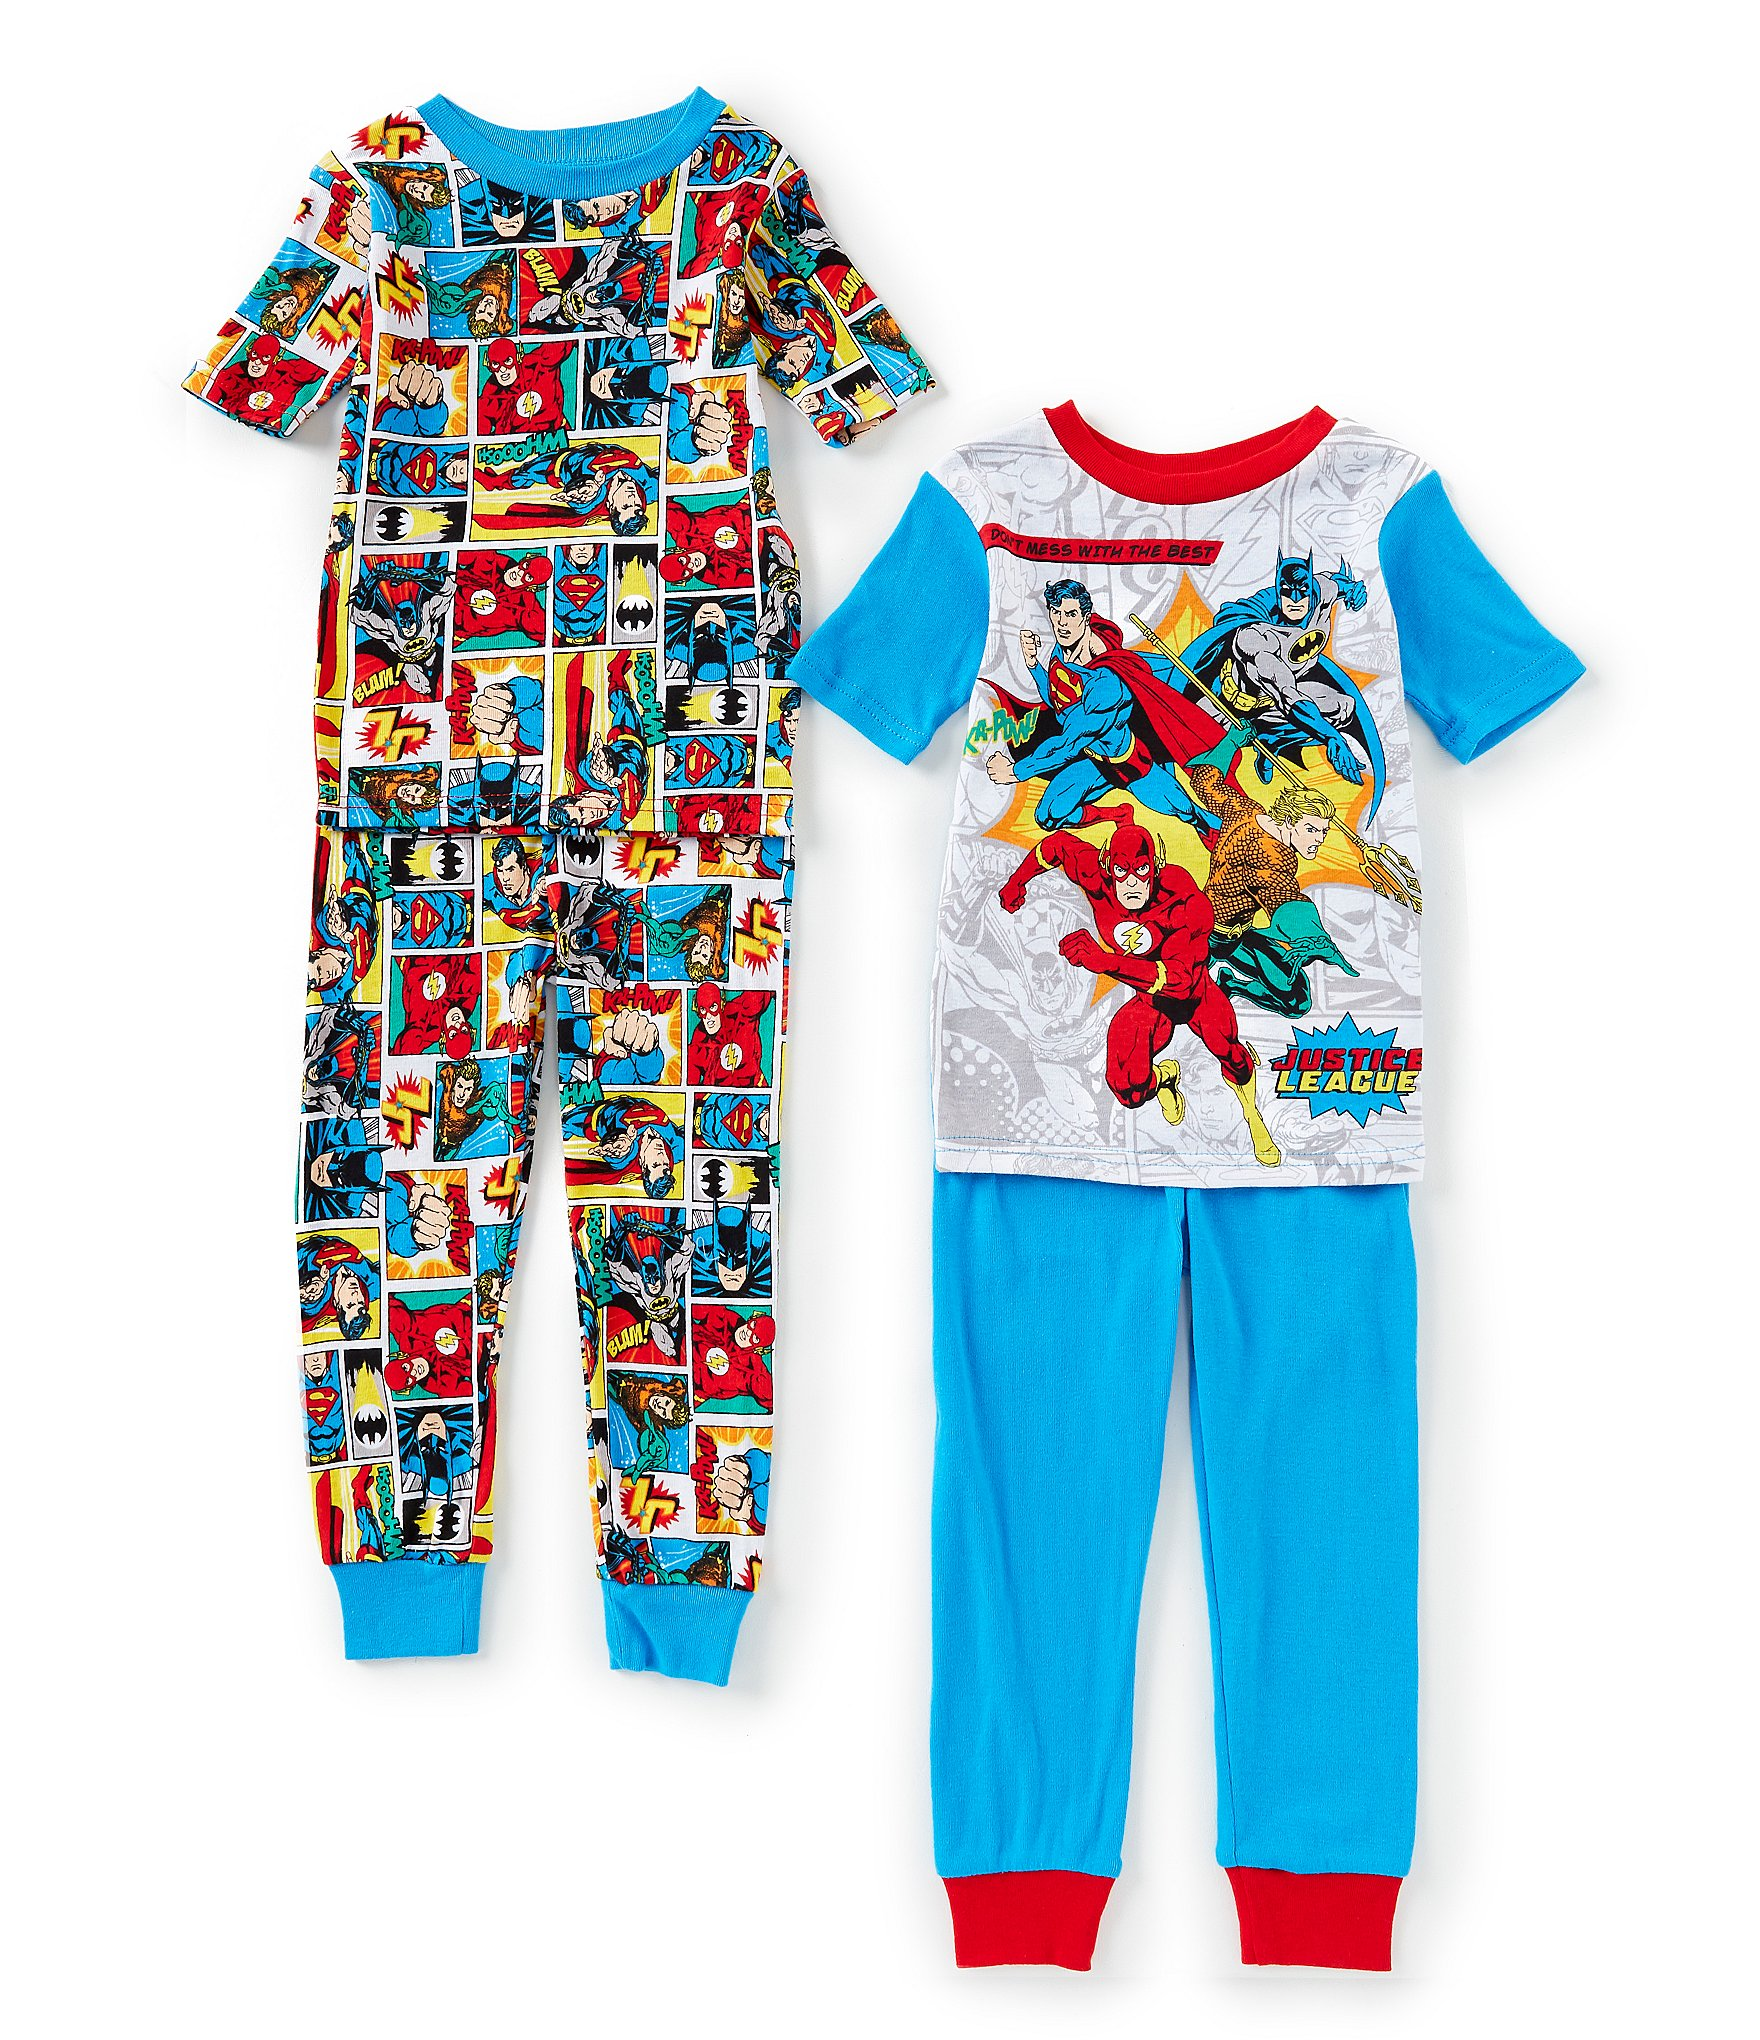 fef12f6211 Blue Boys  Pajamas